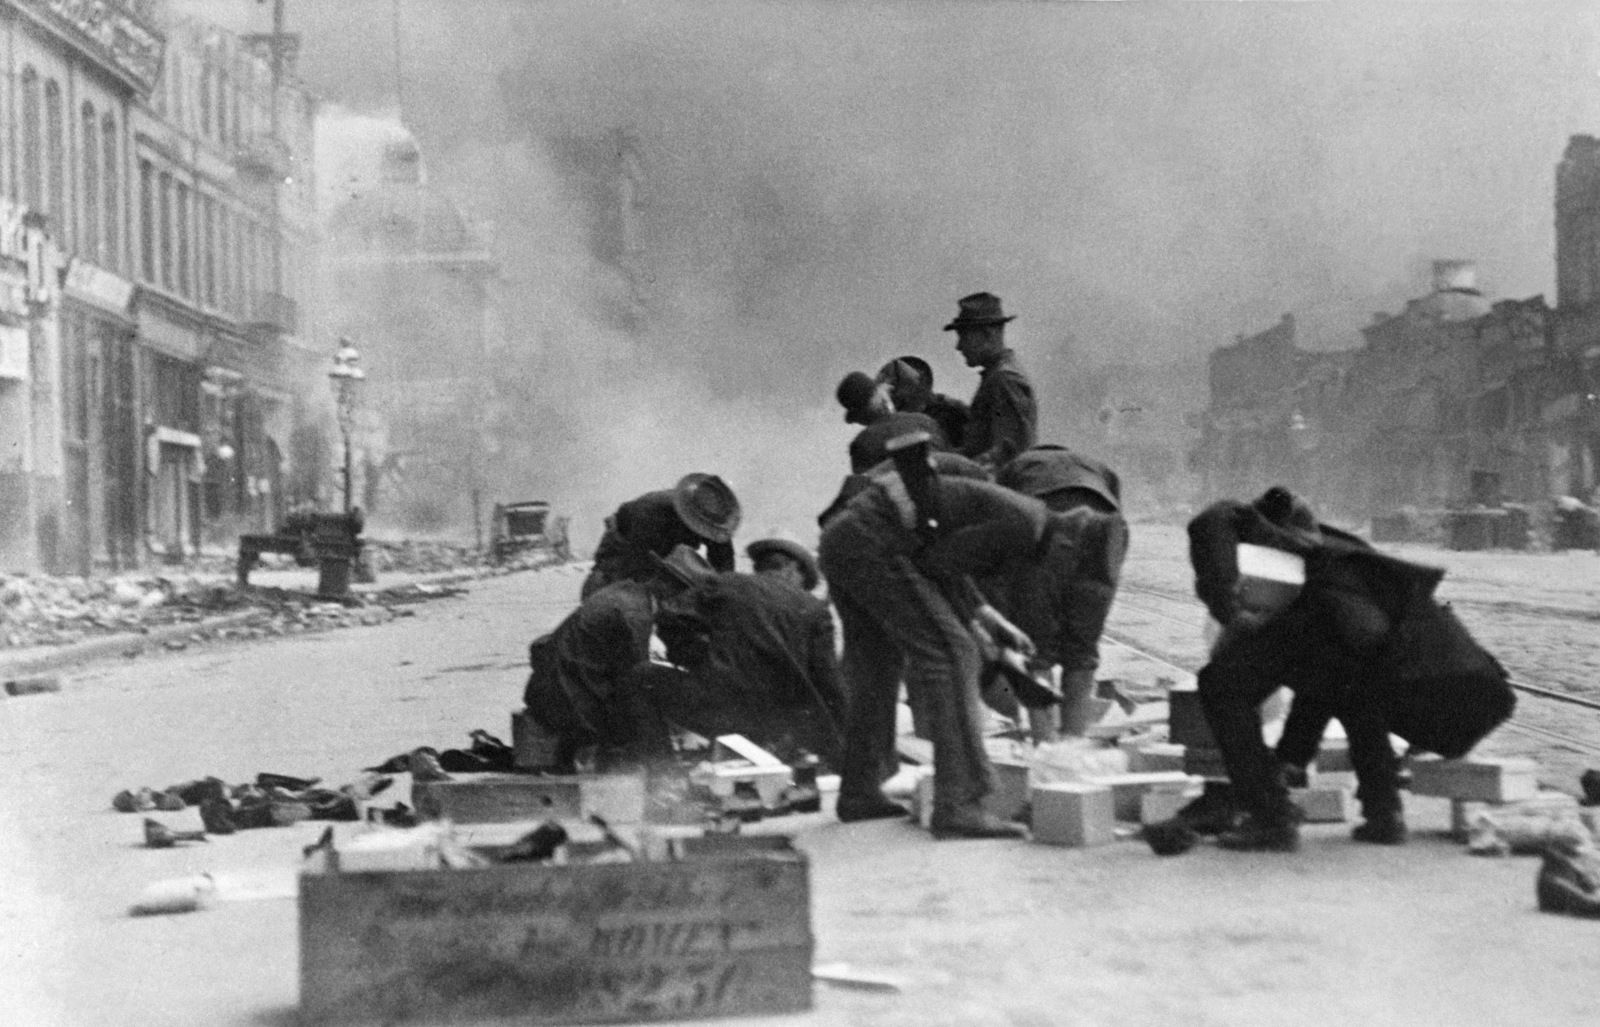 A group of laborers appear to be cleaning building blocks for later use in the rebuilding of San Francisco. A soldier with a Springfield Rifle 03 is picking up something. On April 18, 1906 at 5:15 AM a quake of 8.25 on the Richter scale hit San Francisco. Greater destruction came from the fires afterwards. The city burned for three days. The combination destroyed 490 city blocks and 25,000 buildings, leaving 250,000 homeless and killing between 450 and 700. Estimated damages, over $350 million